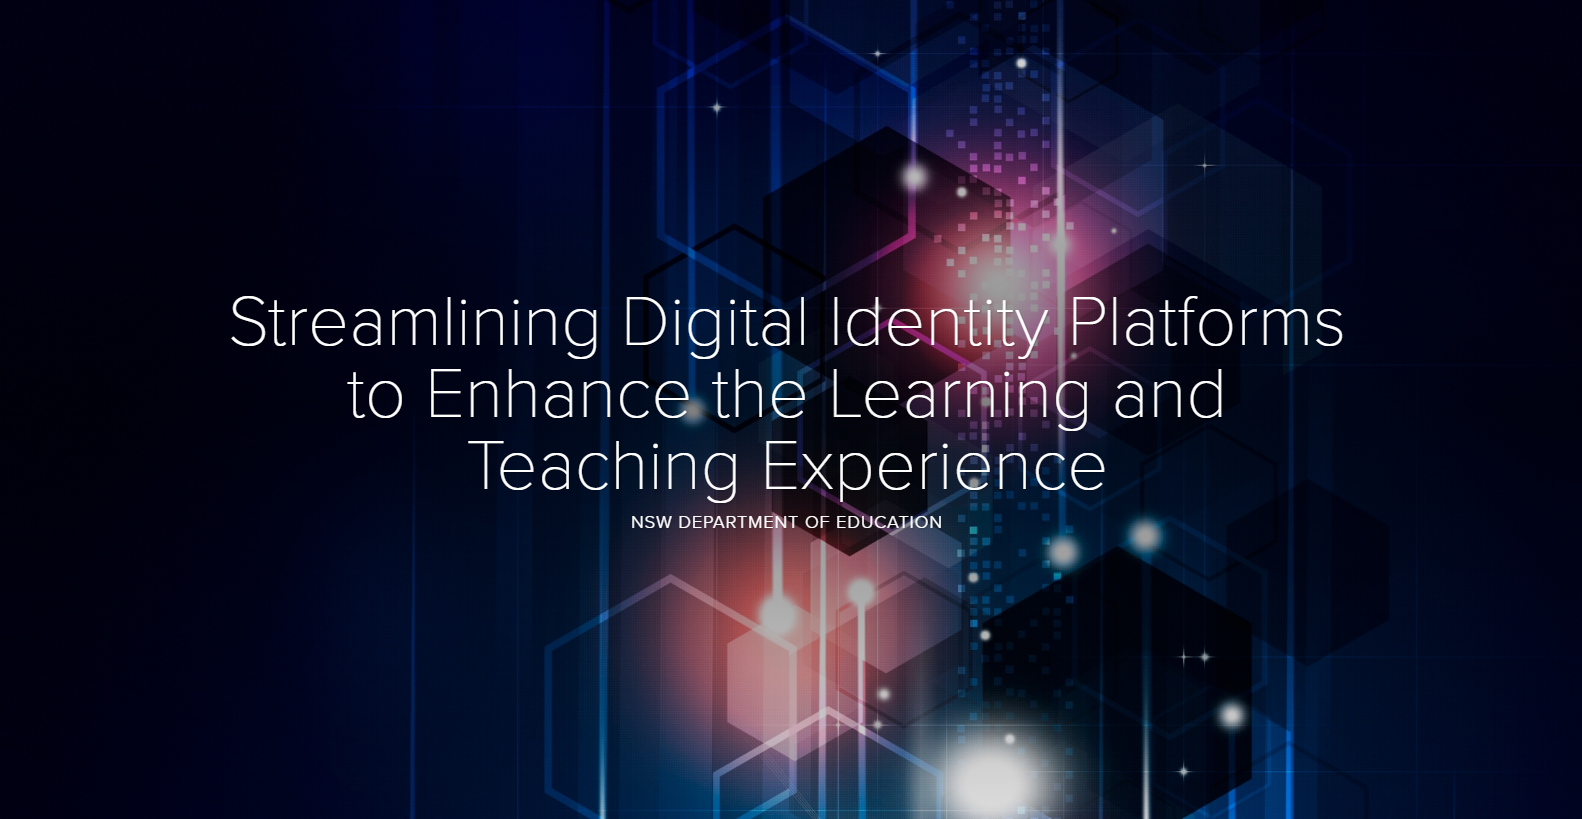 Streamlining Digital Identity Platforms to Enhance the Learning and Teaching Experience